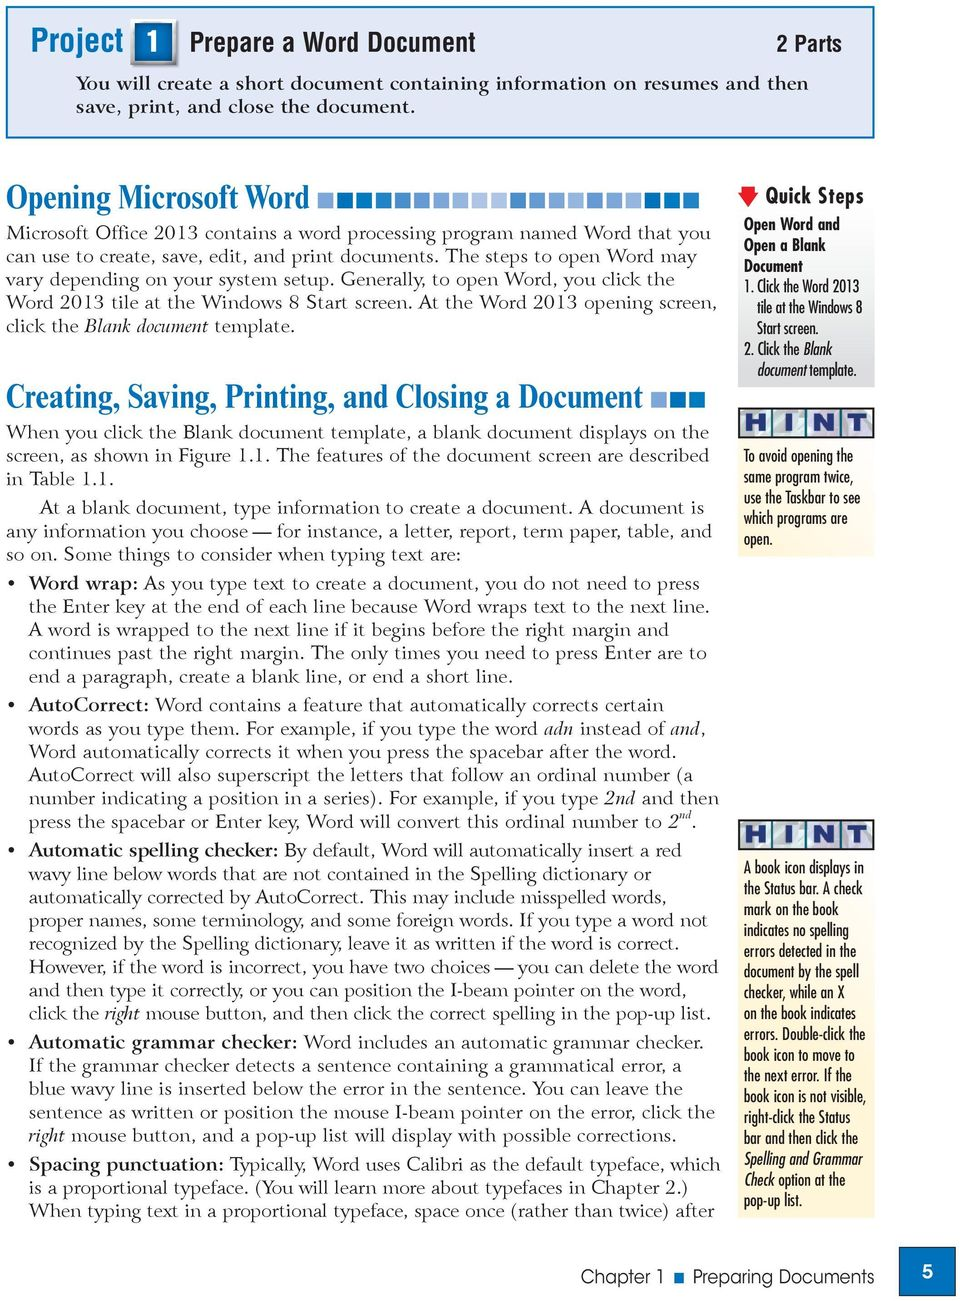 Level 1  Unit 1 Editing and Formatting Documents  Chapter 1